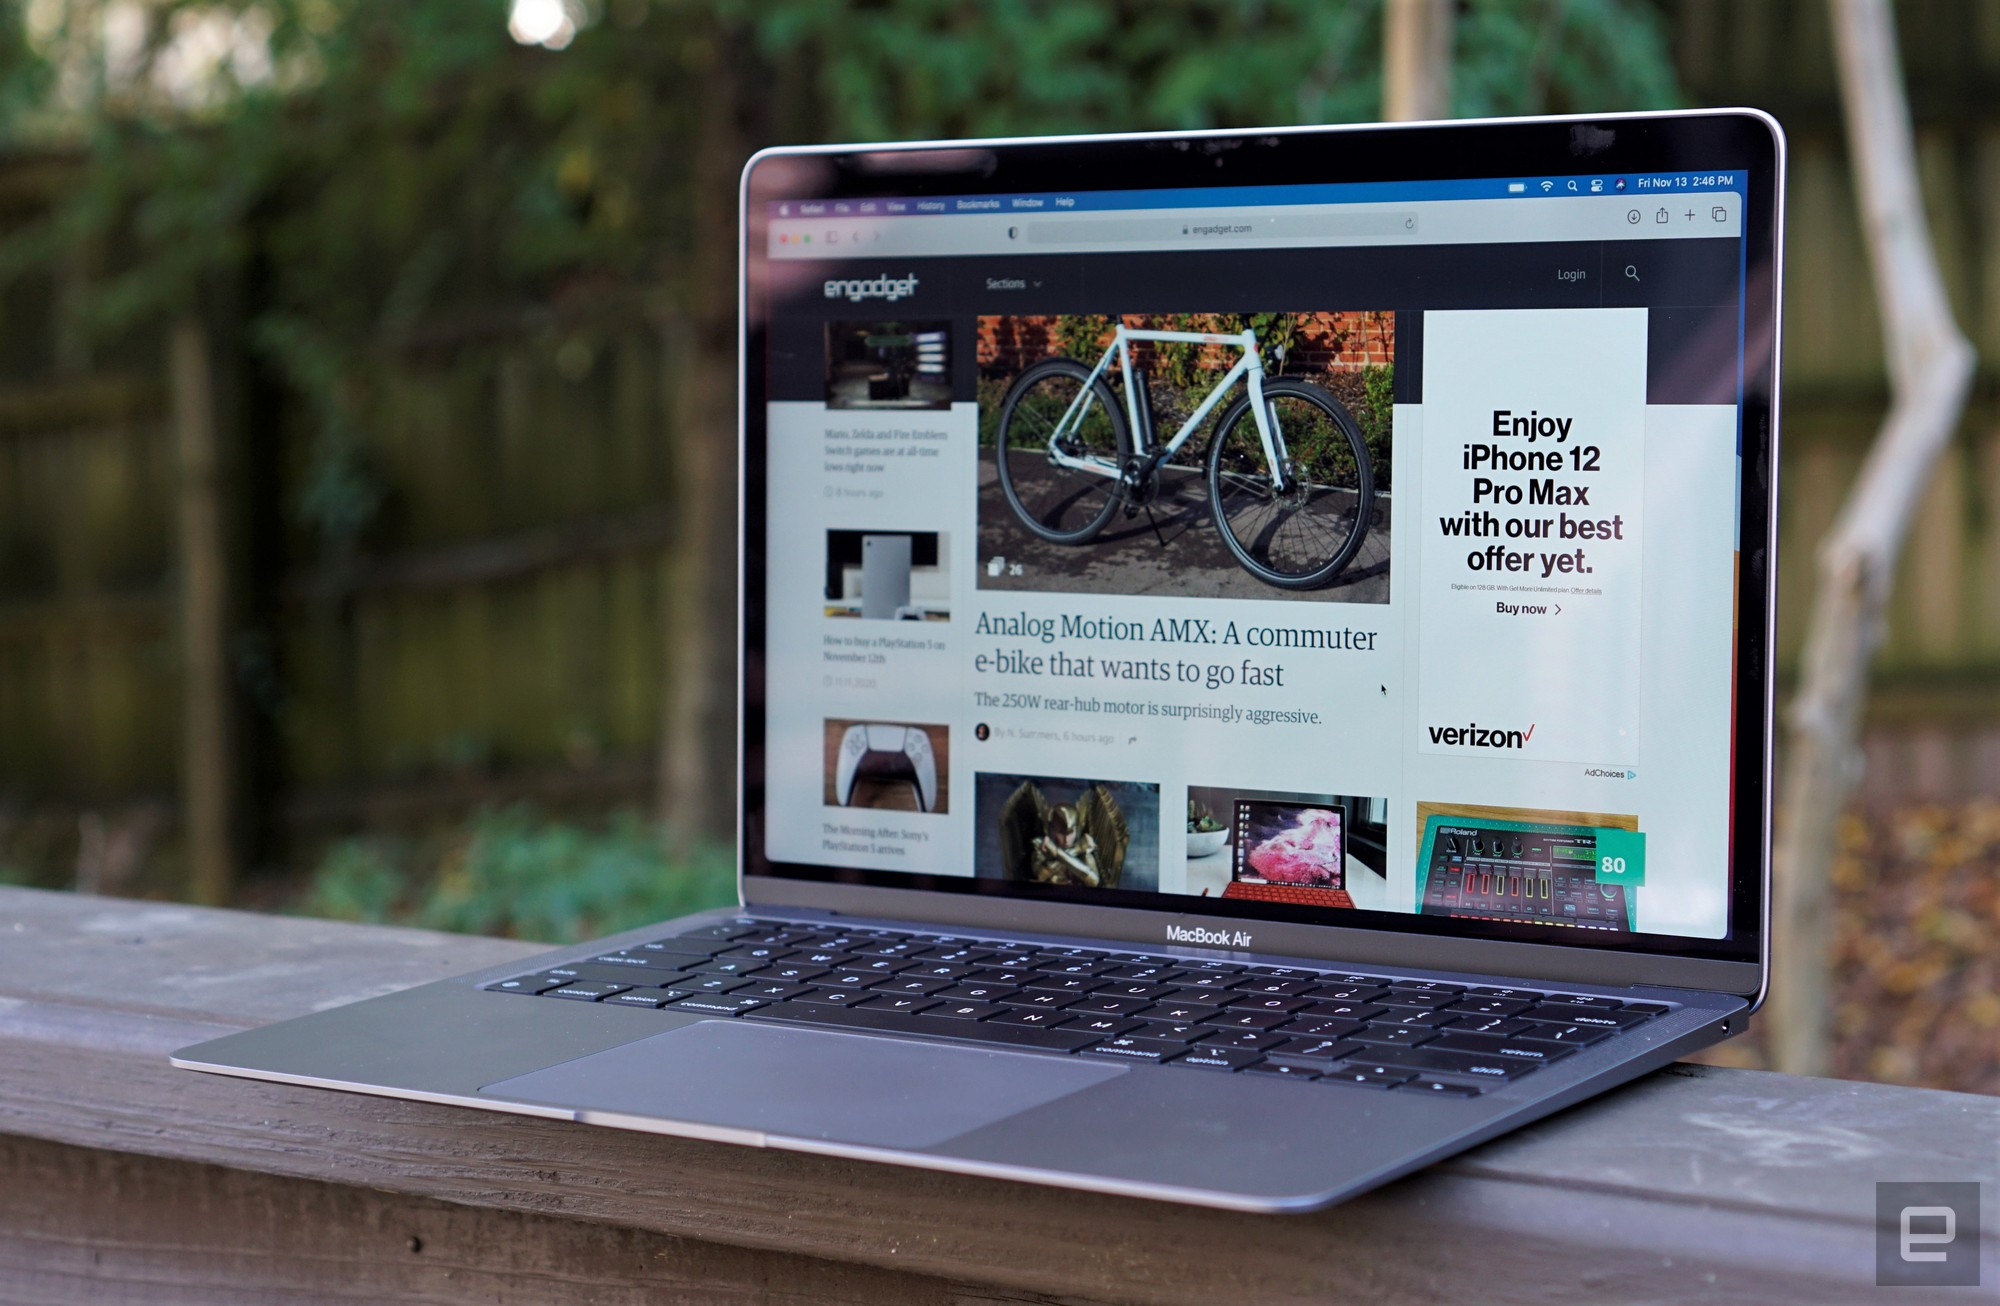 Apple MacBook Air M1 models fall back to all-time lows - Engadget